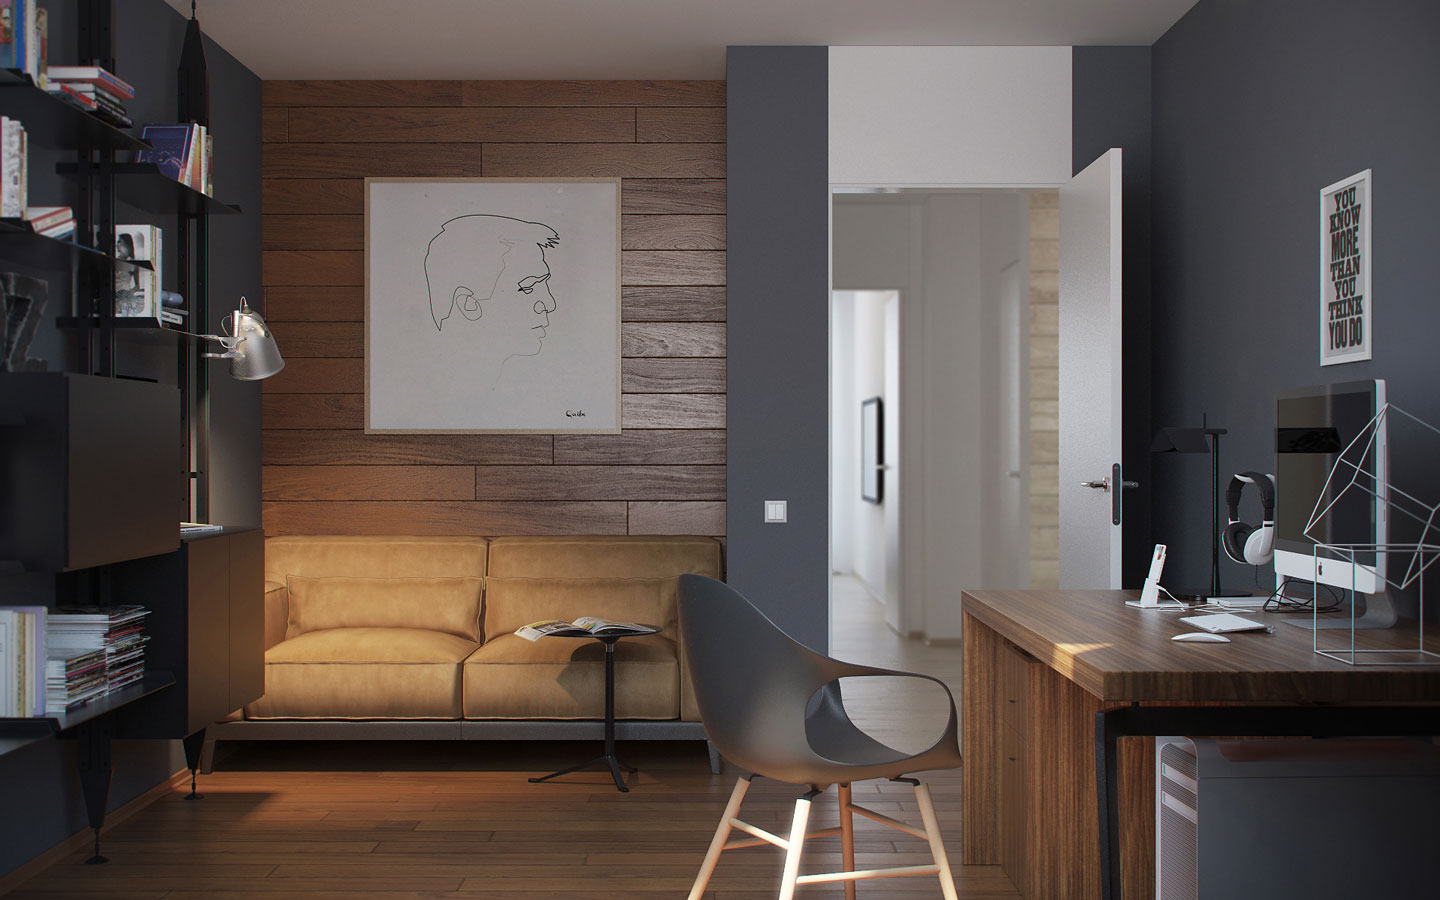 Enjoyable 5 Ideas For A One Bedroom Apartment With Study Includes Floor Plans Largest Home Design Picture Inspirations Pitcheantrous